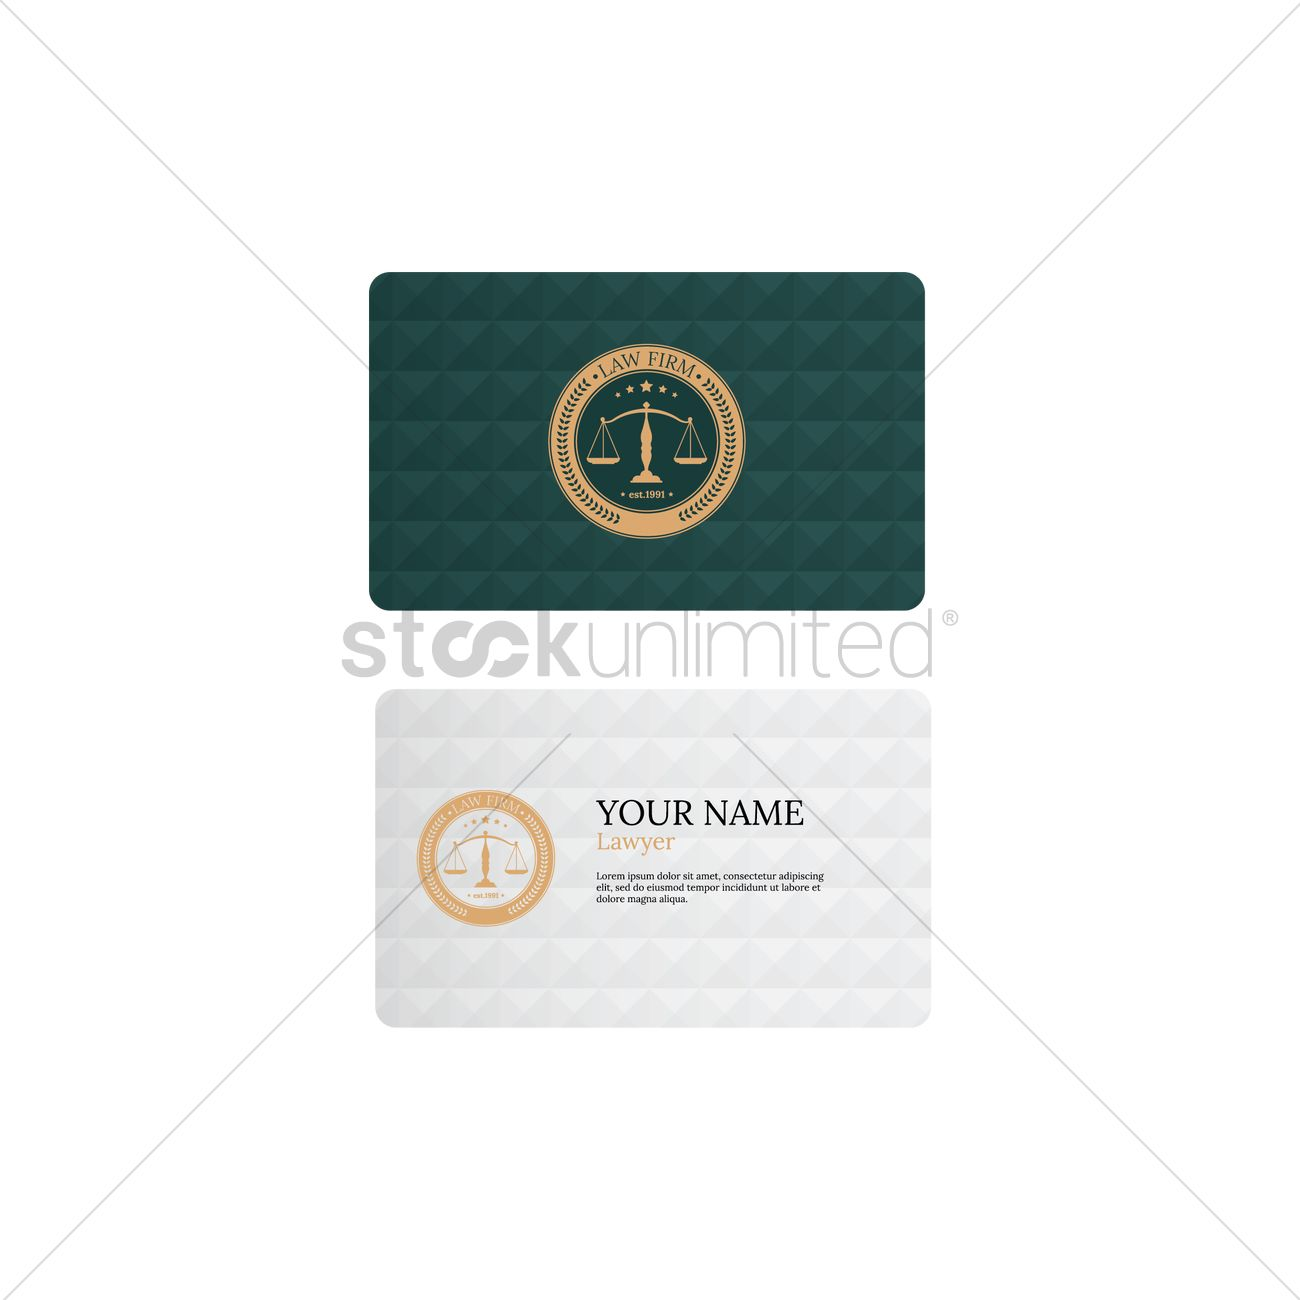 Law firm business card Vector Image - 1969771 | StockUnlimited